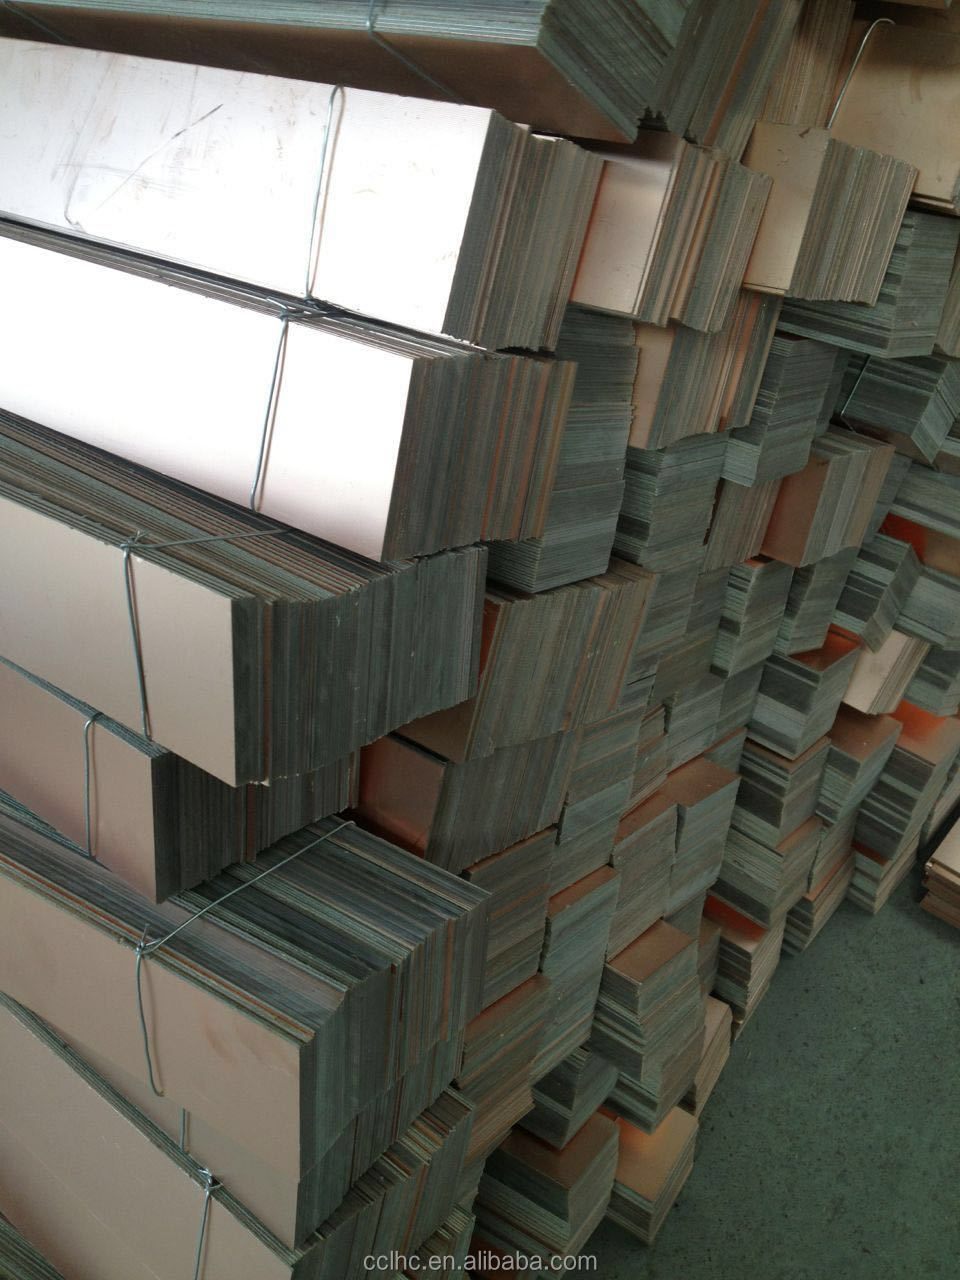 Copper Clad Laminate Ccl Offcuts From Korea With